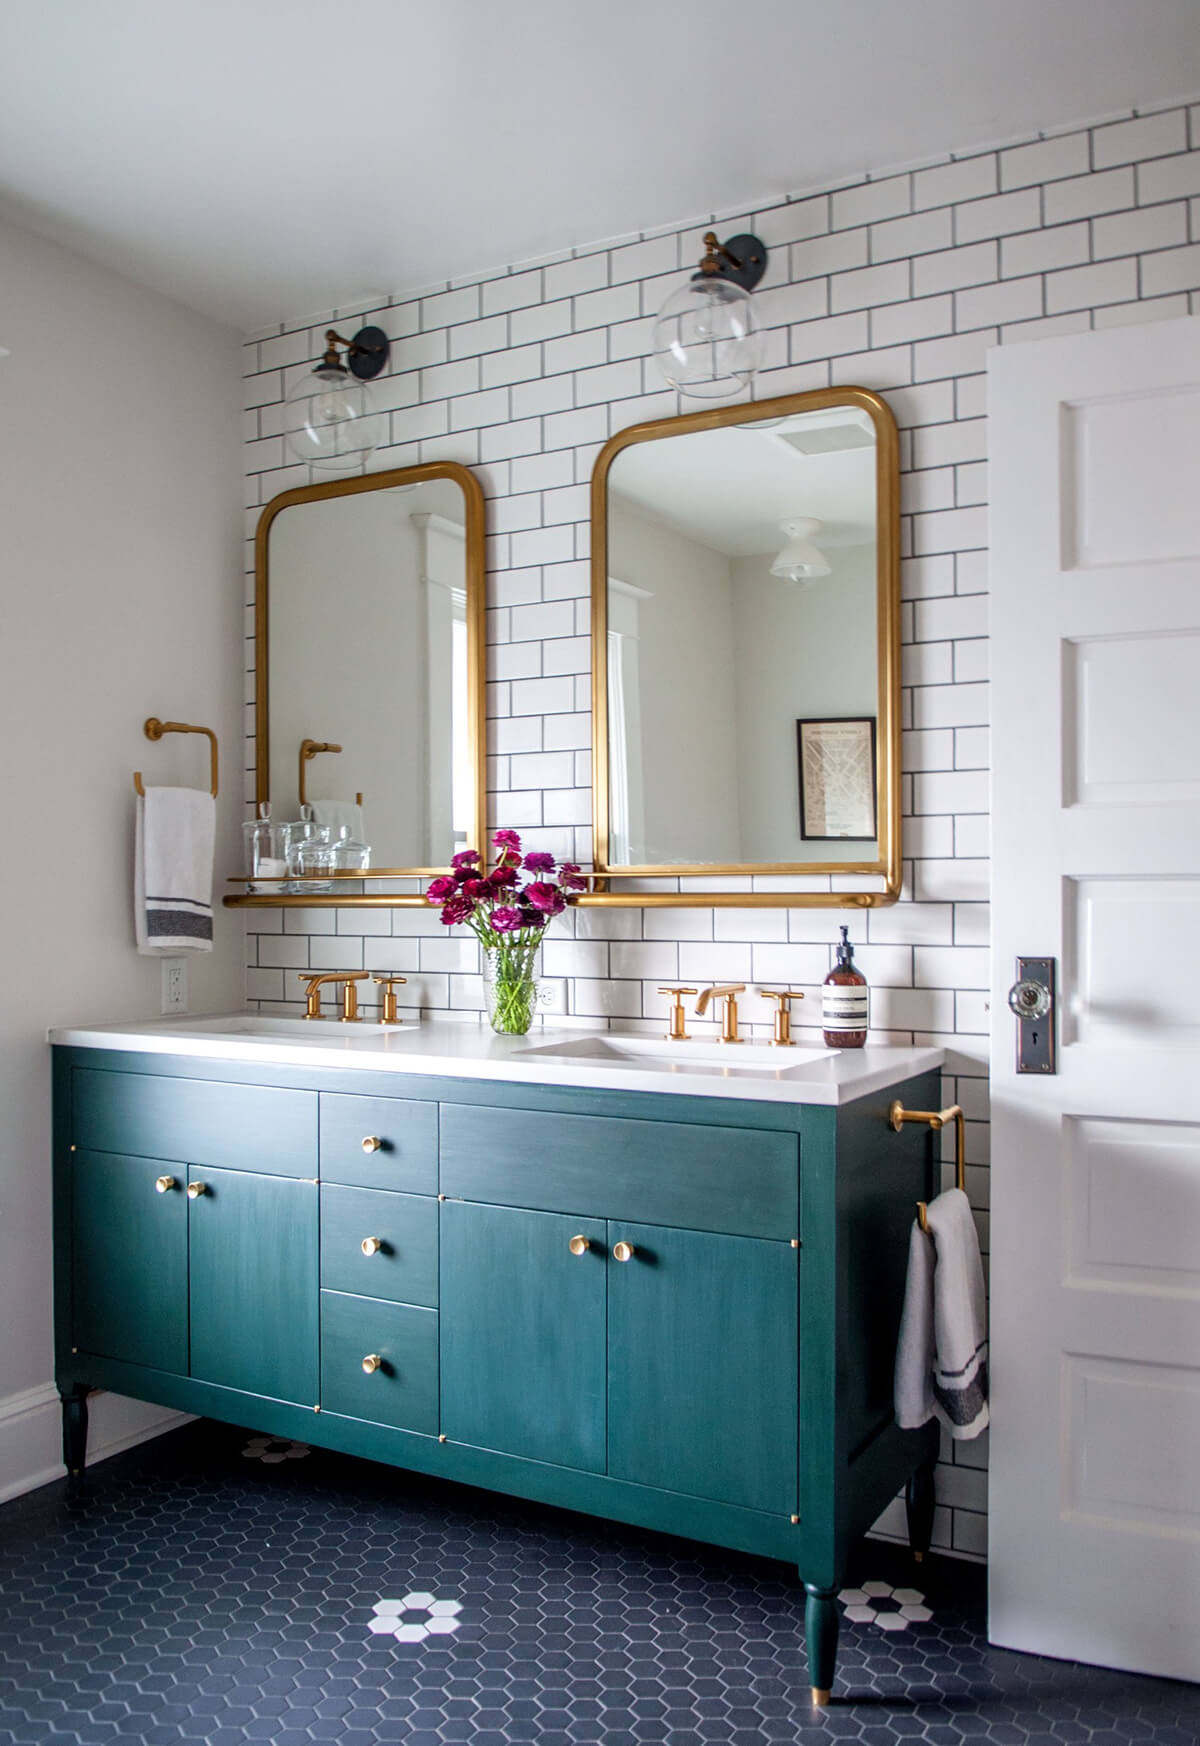 A Little Bit O' Glam Bathroom